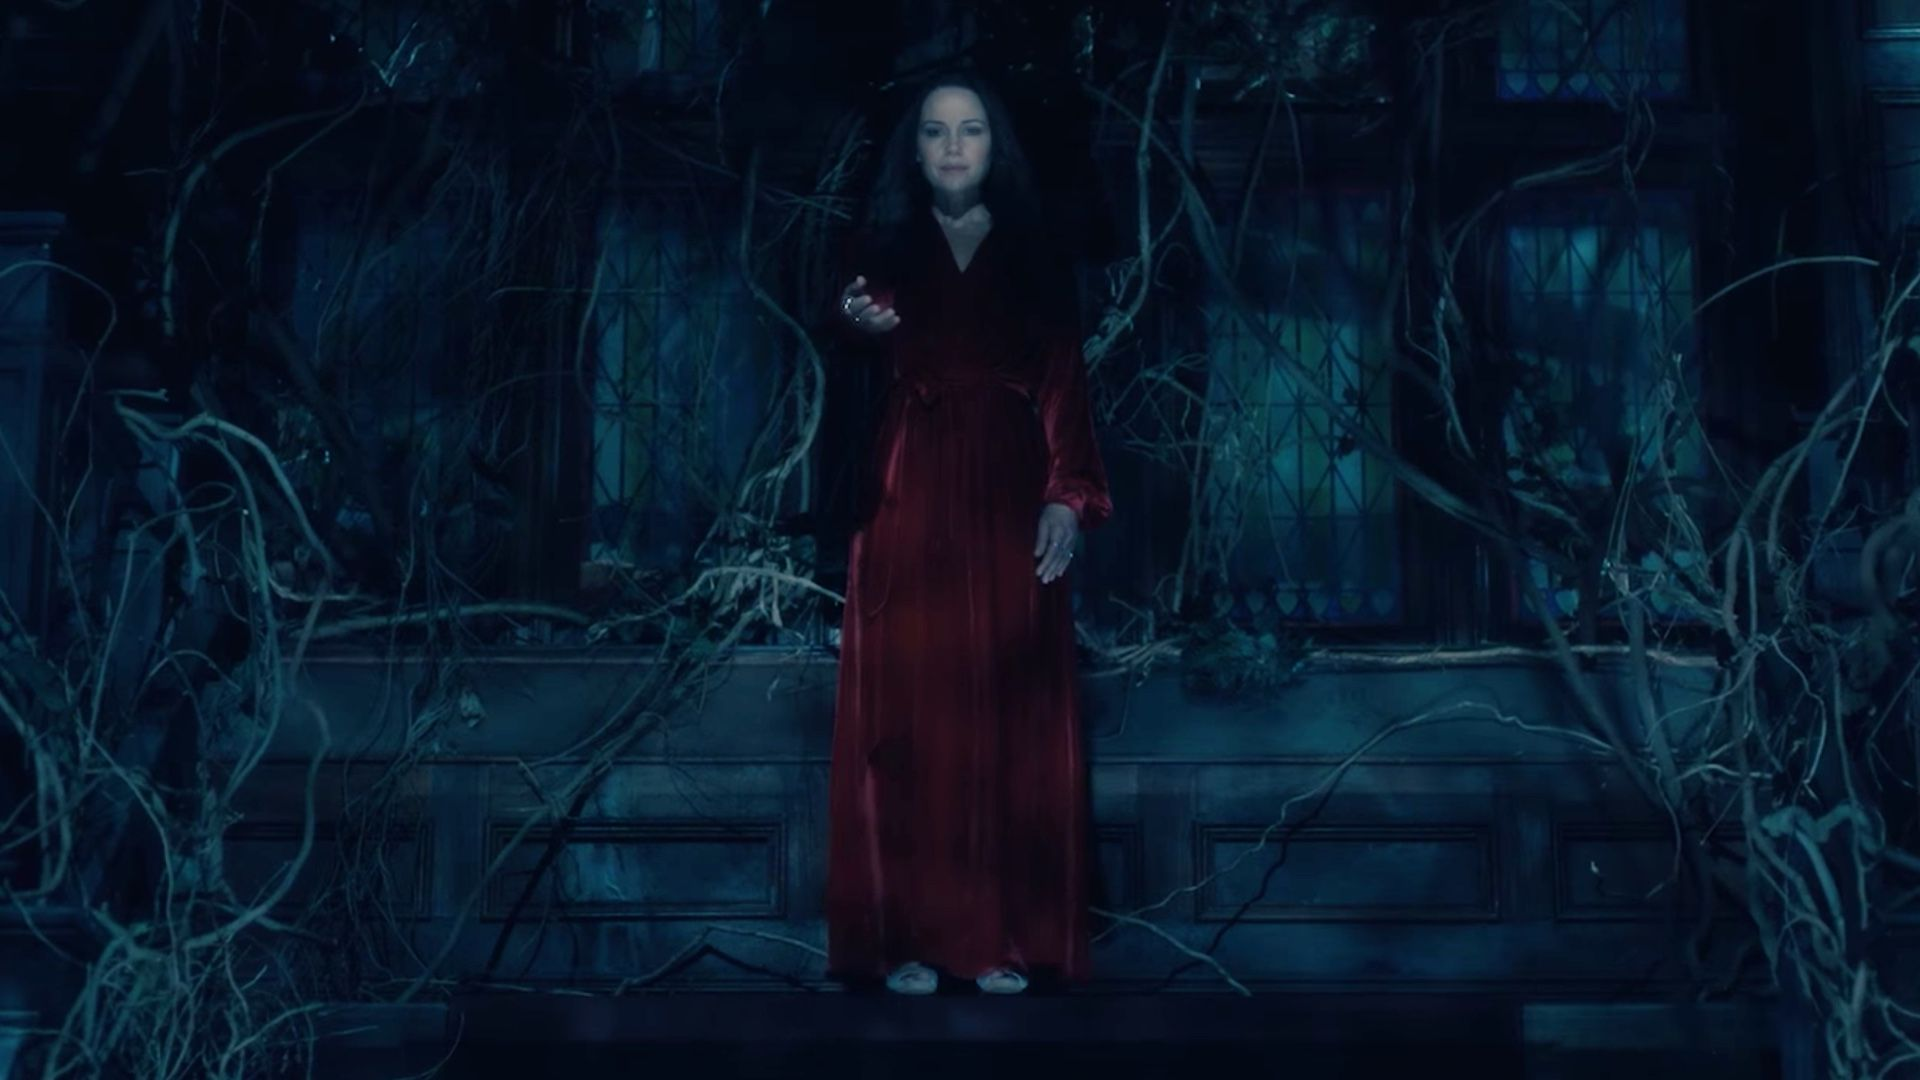 Awesomely Creepy Full Trailer For Netflix S New Horror Series The Haunting Of Hill House Carla Gugino Residencia Serie Netflix